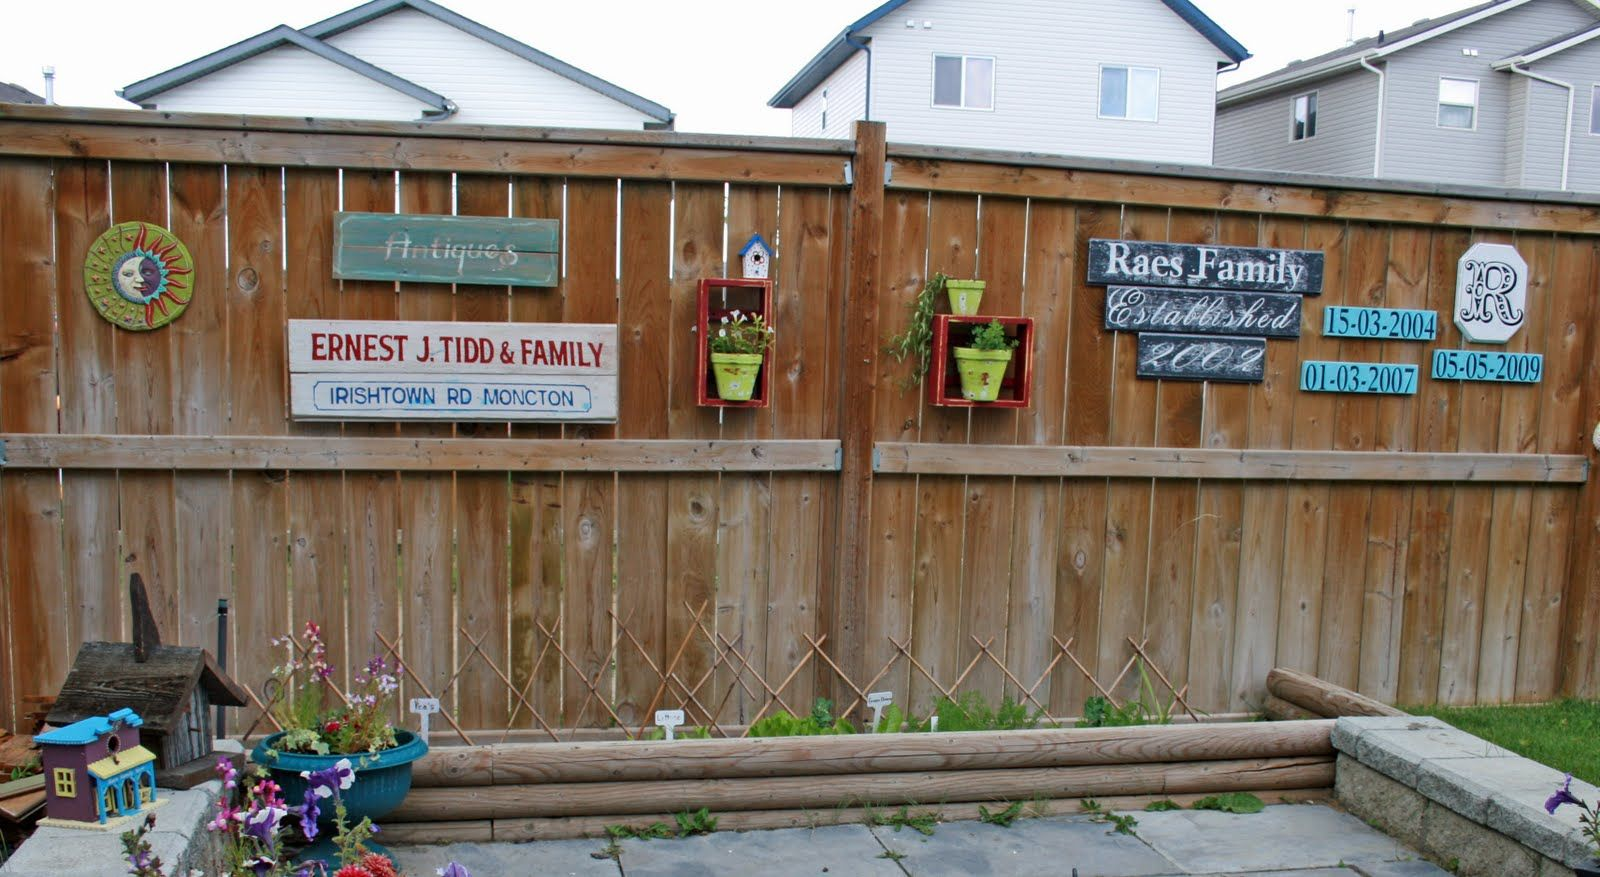 ideas to decorate the backyard fence with.